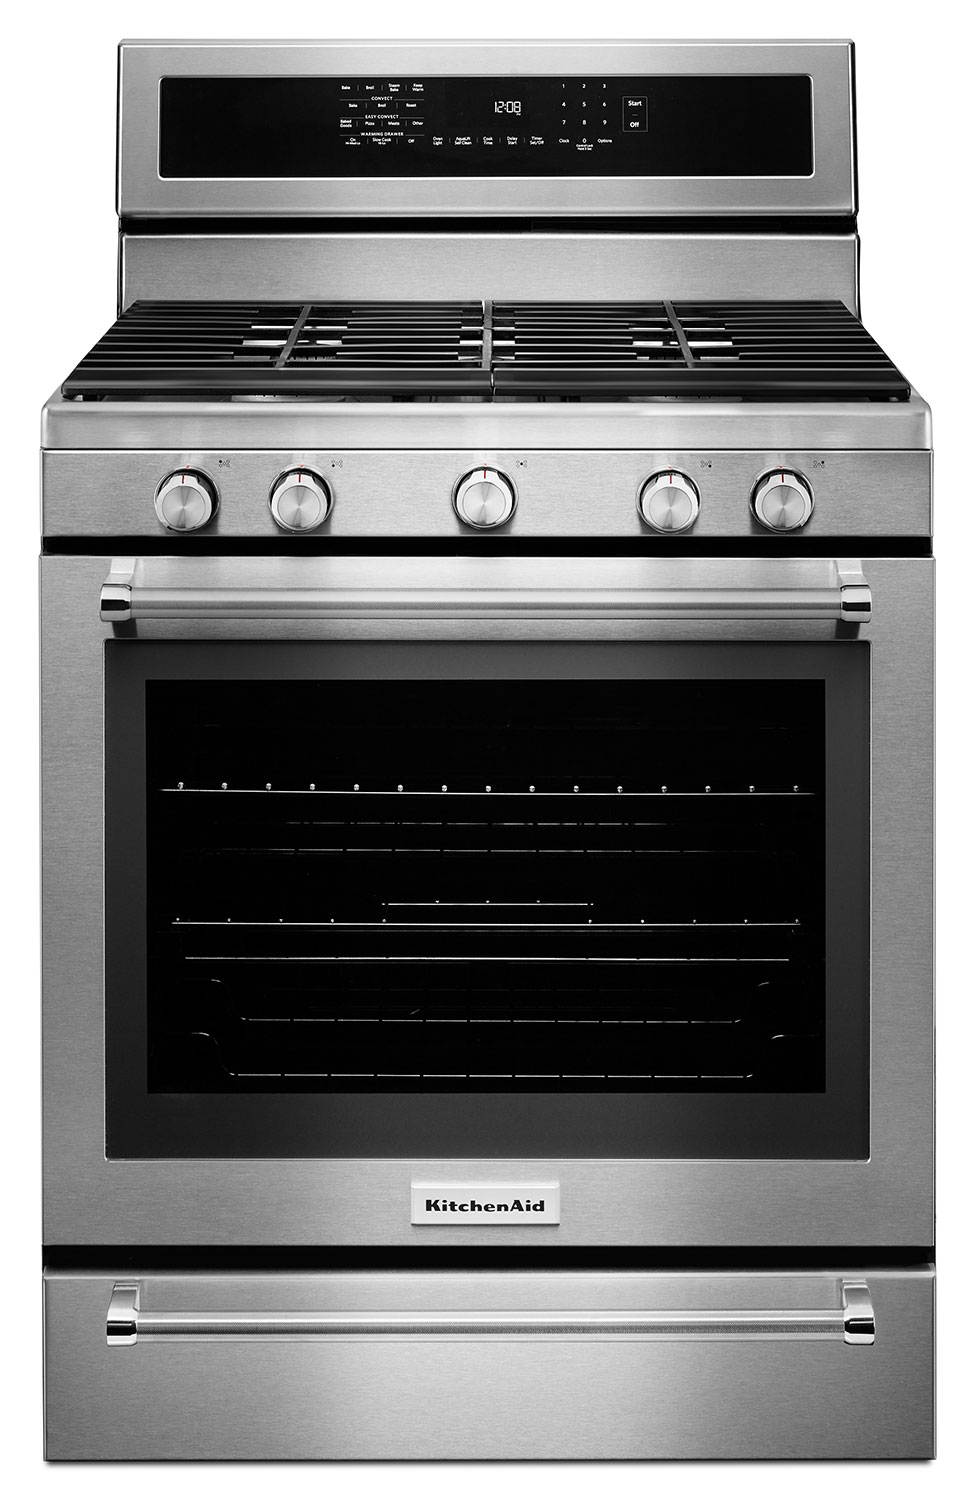 Cooking Products - KitchenAid Freestanding Stainless Steel True Convection Gas Range (5.8 Cu. Ft.) - KFGS530ESS